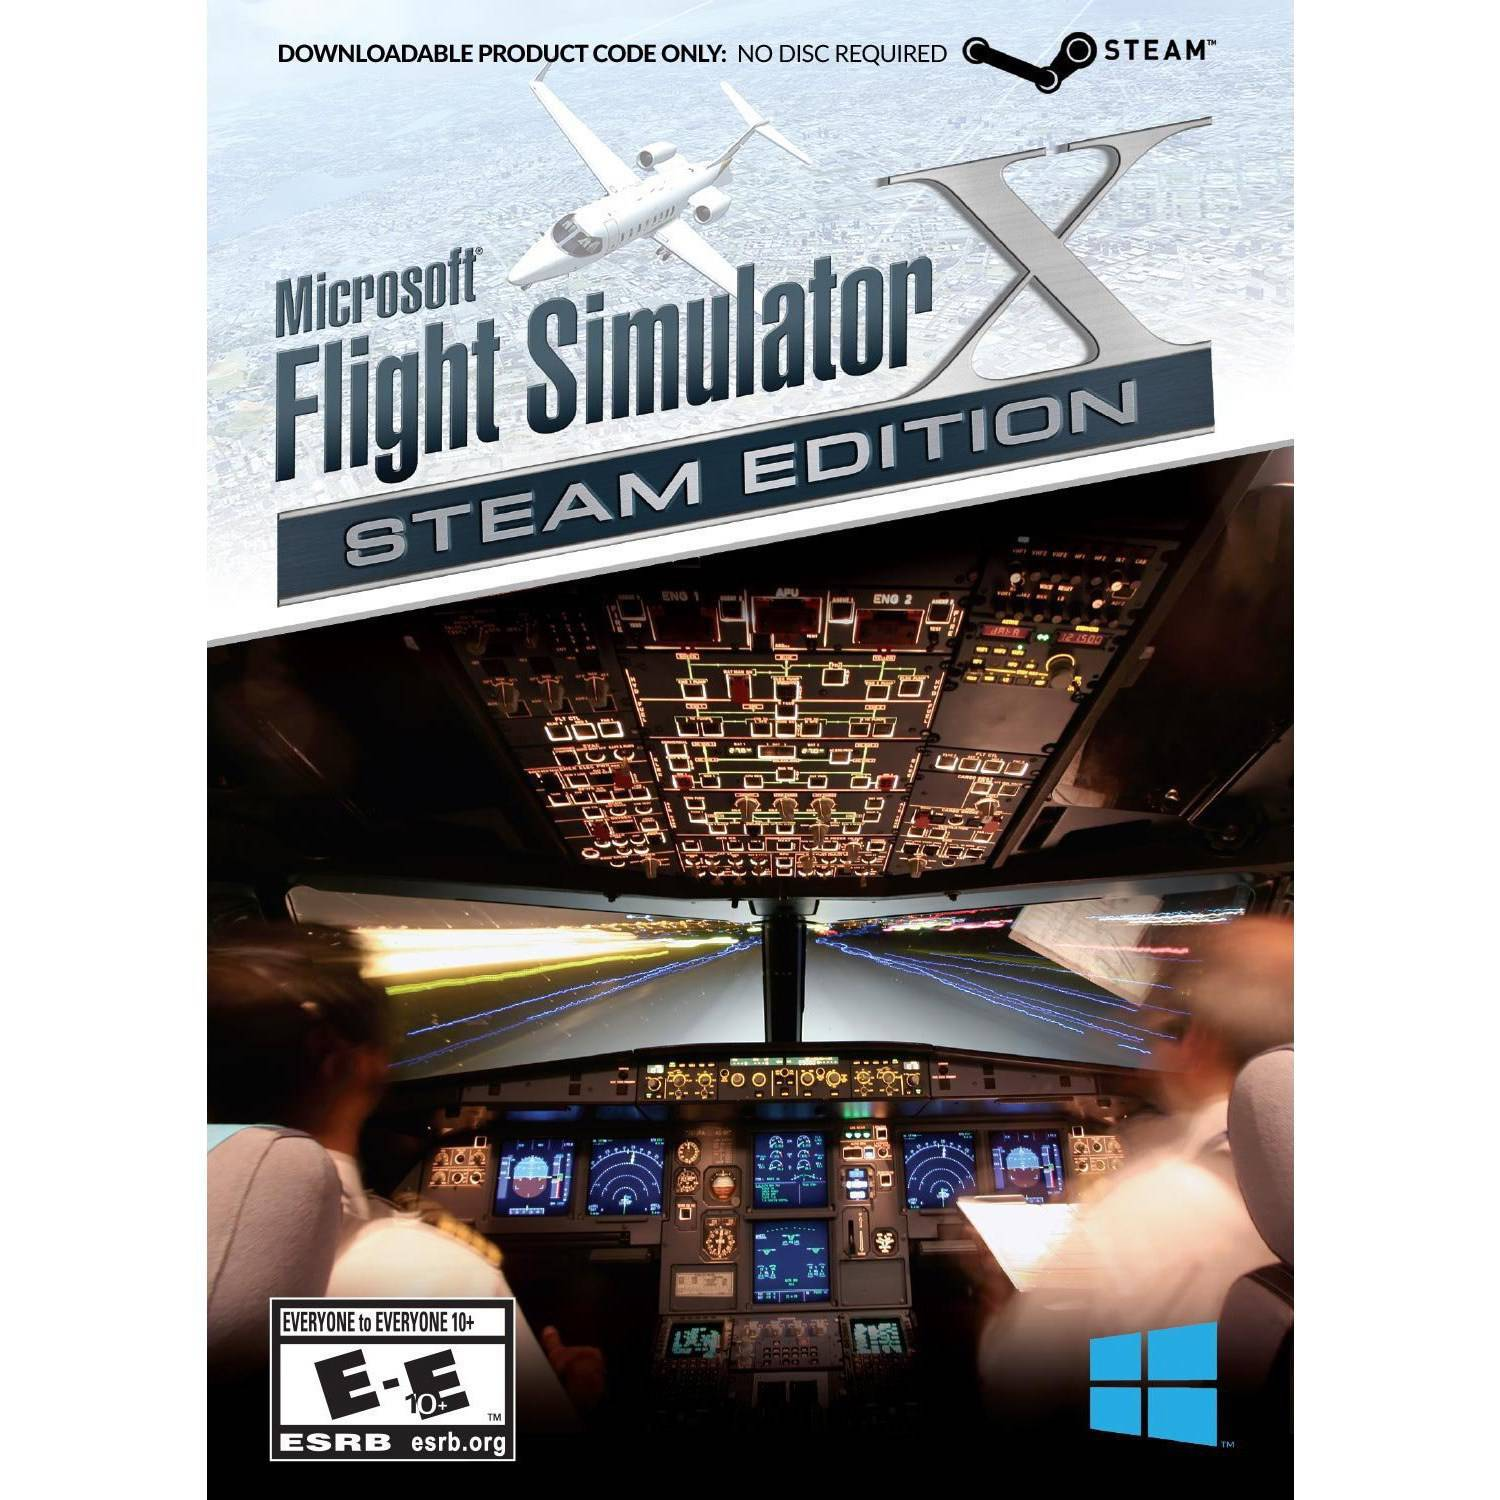 Flight Simulator X Steam Edtion (PC)